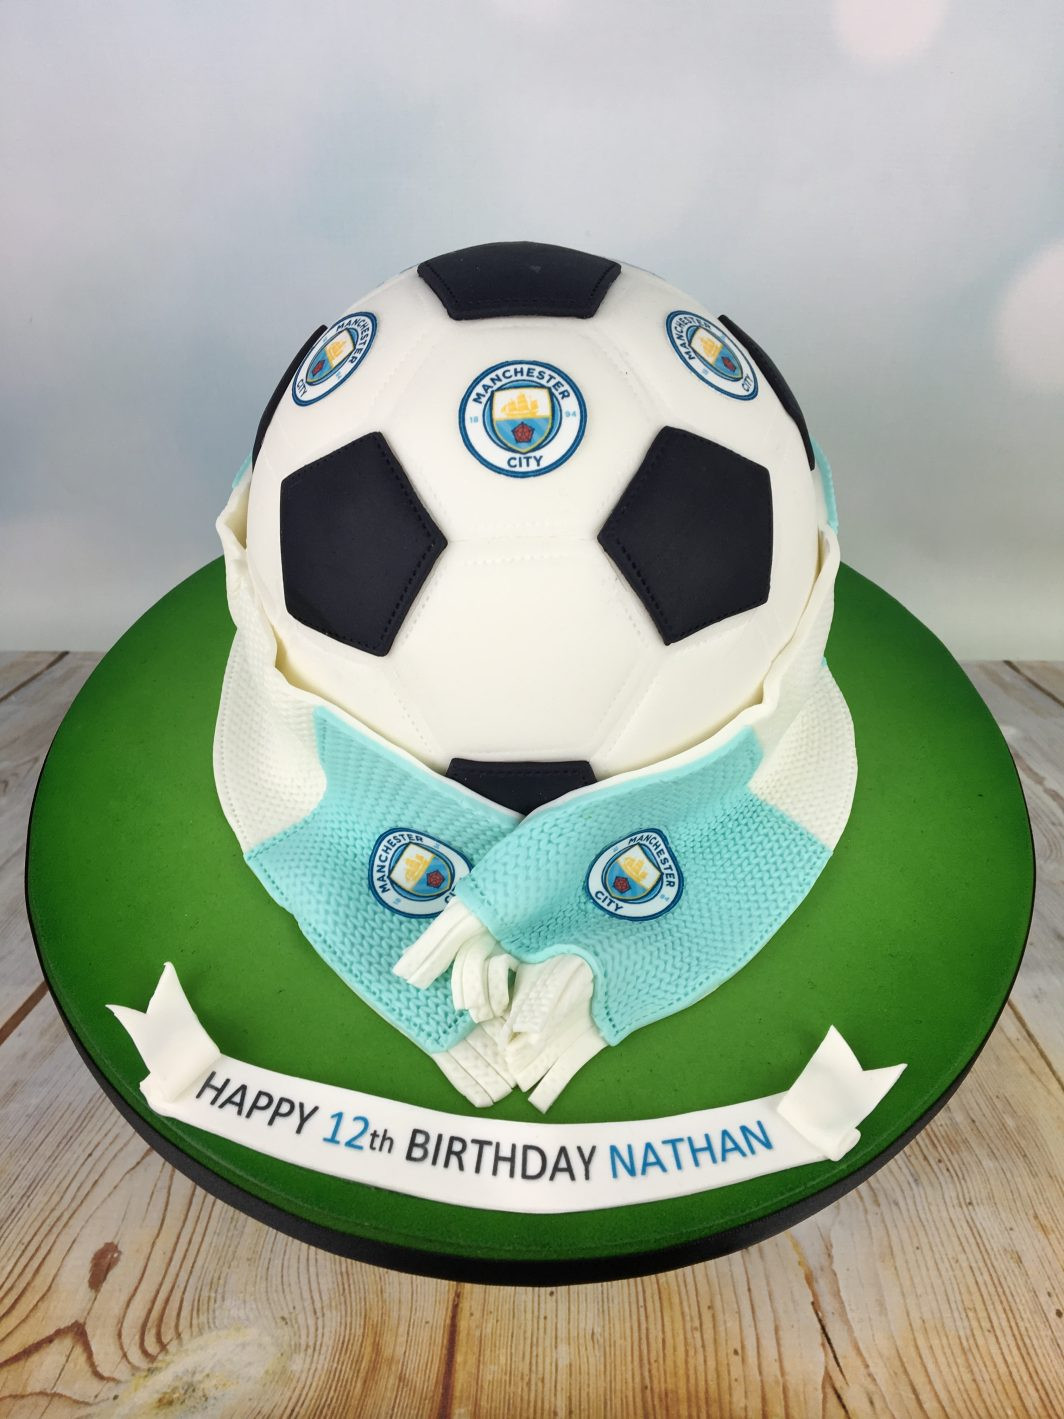 Best ideas about Football Birthday Cake . Save or Pin Manchester city football birthday cake Mel s Amazing Cakes Now.